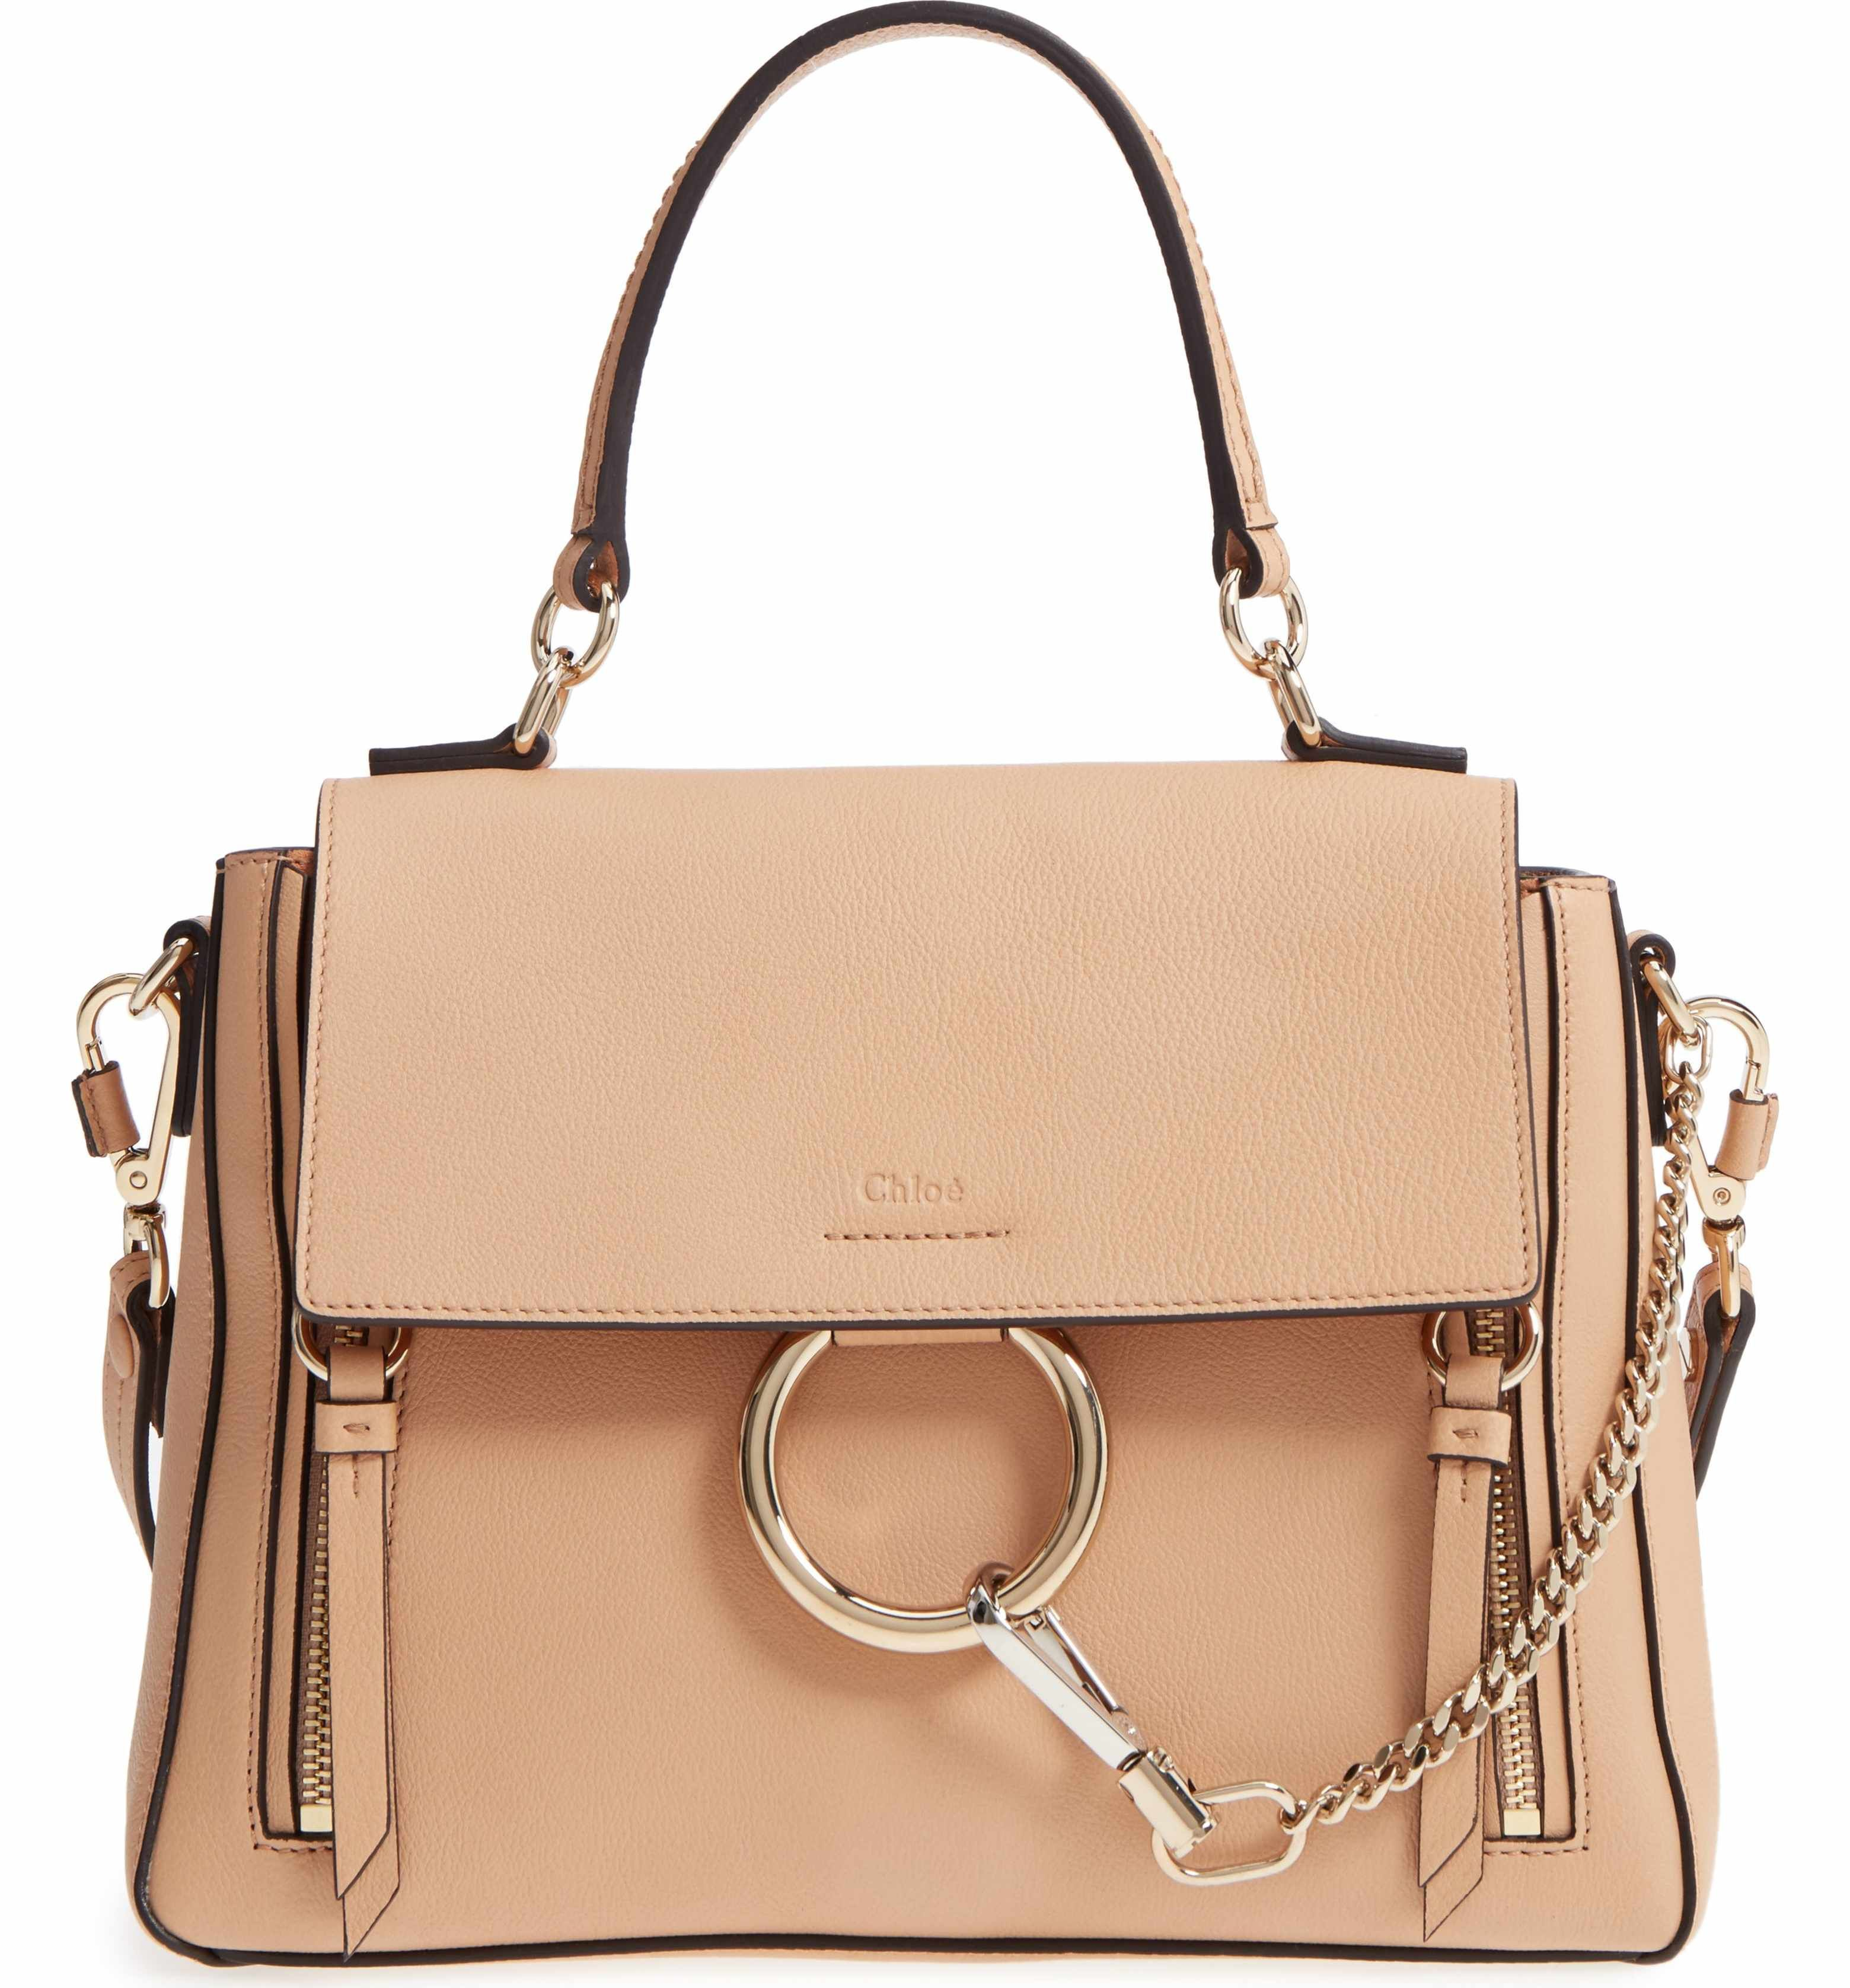 76347a712 Main Image - Chloé Small Faye Day Leather Shoulder Bag | My Style ...